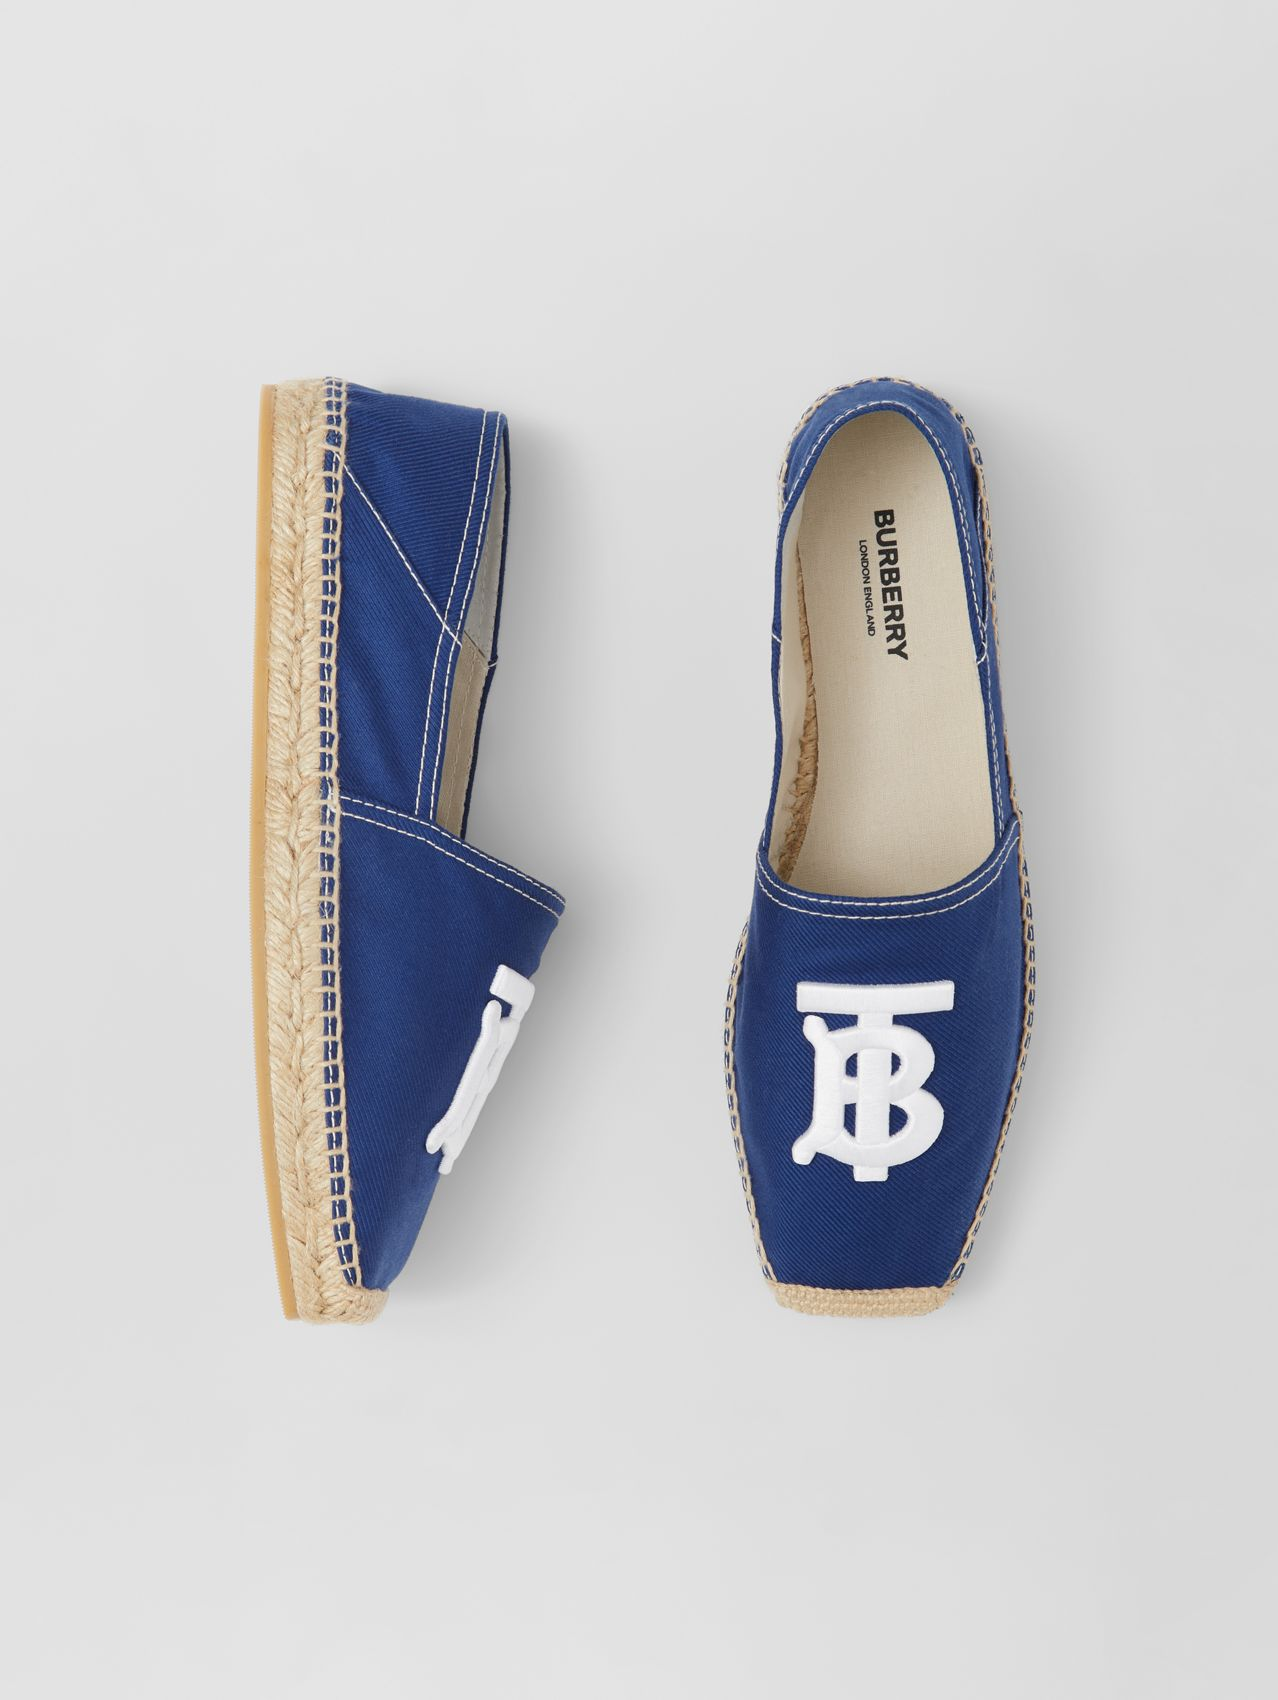 Monogram Motif Cotton Canvas Espadrilles in Navy